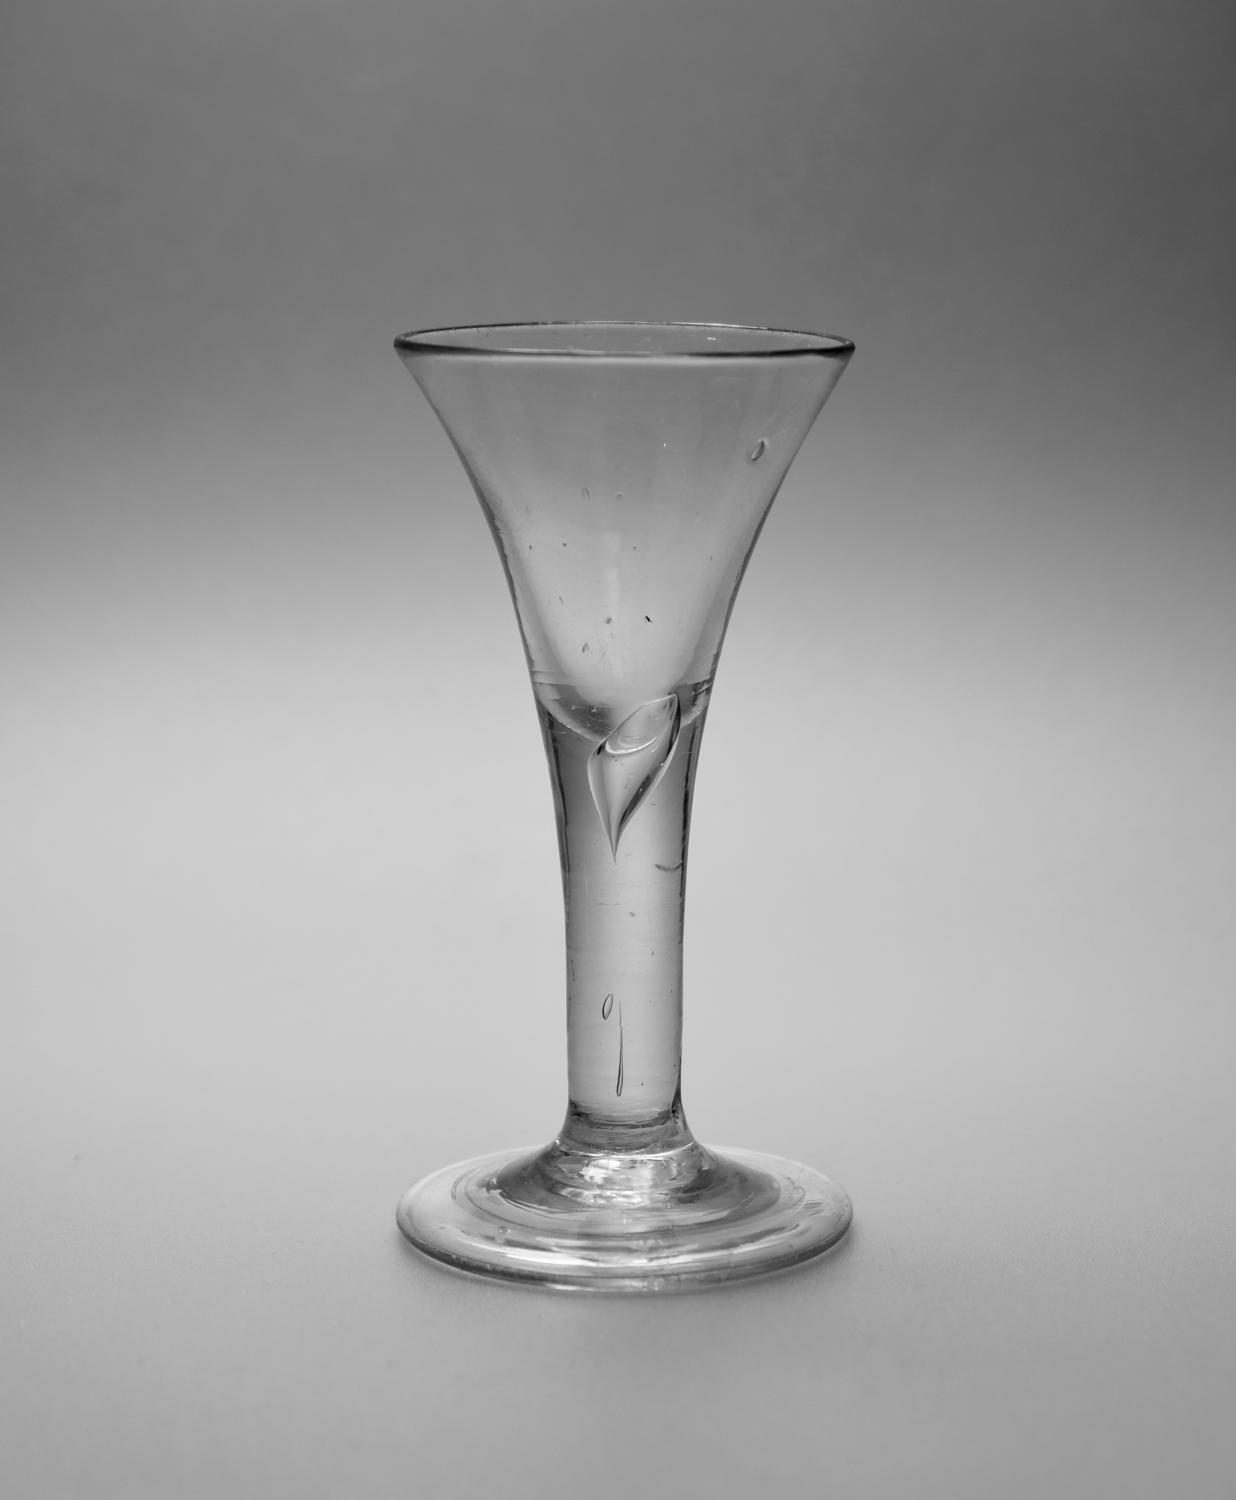 Plain stem wine glass C1750.